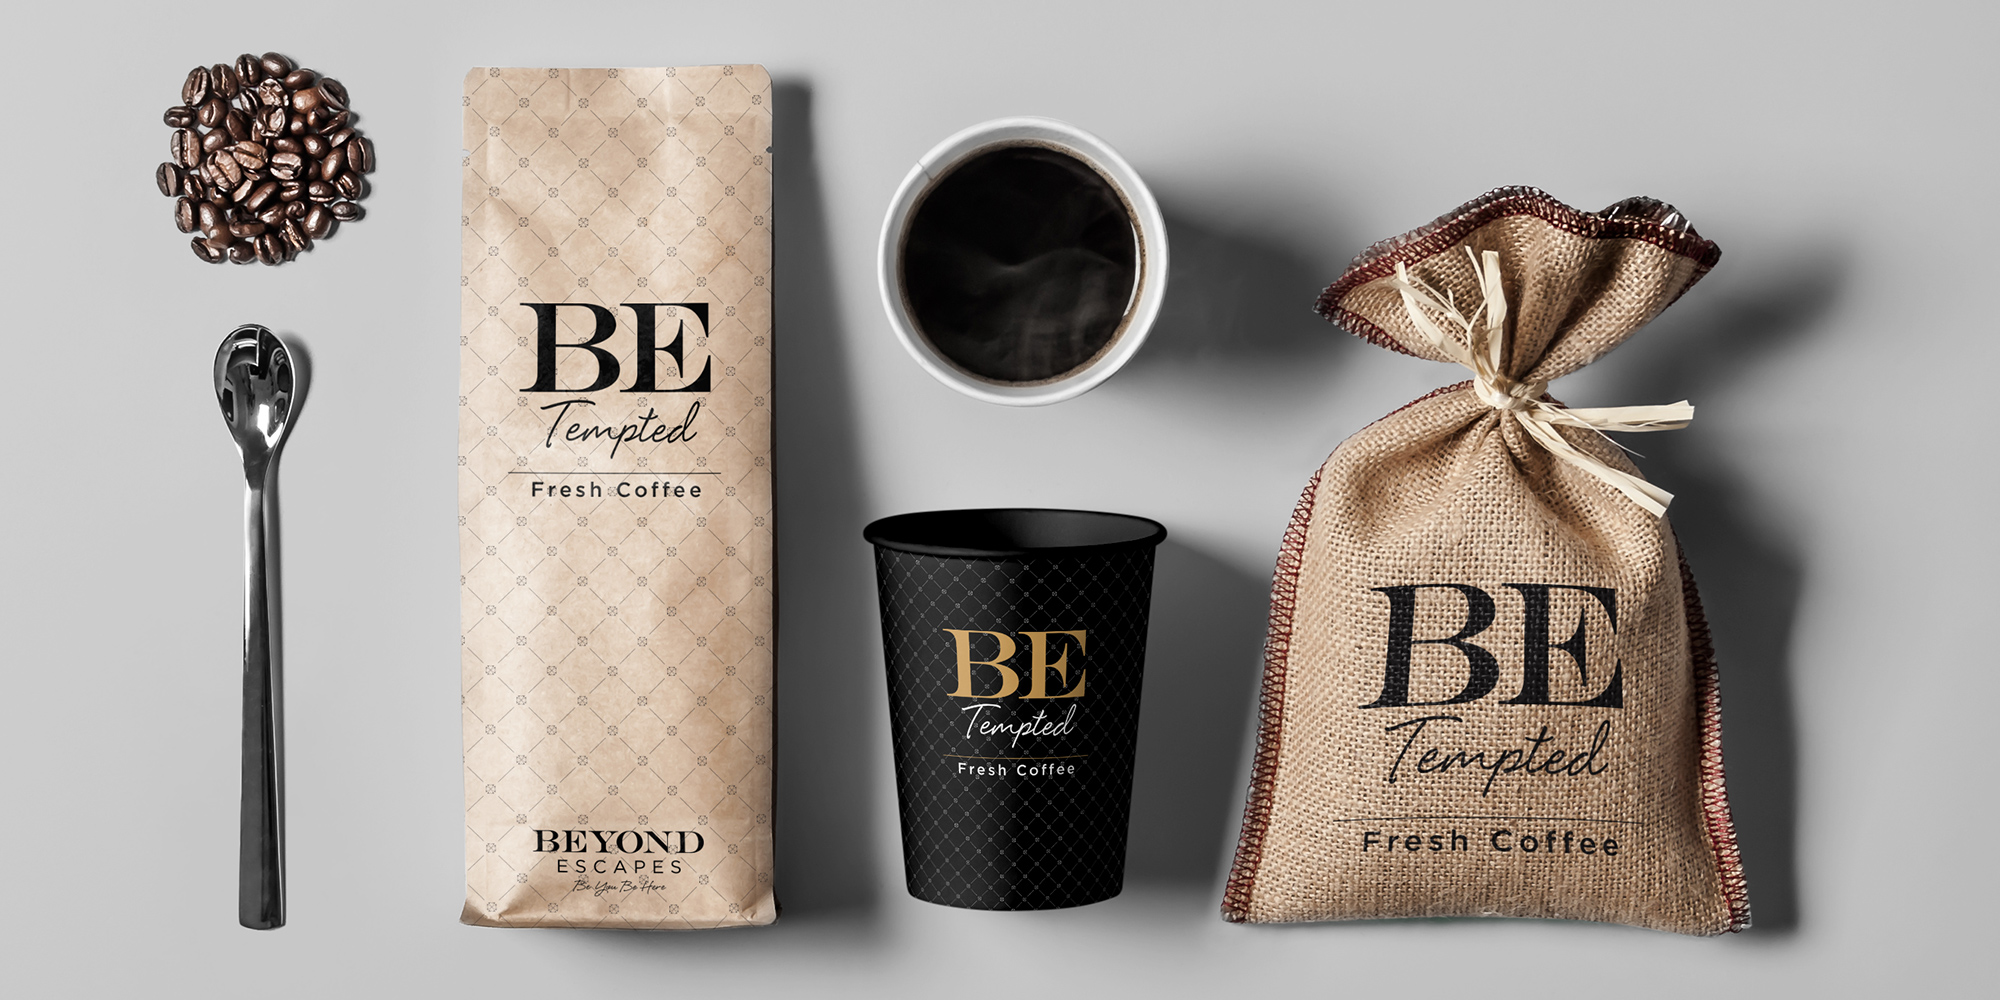 BE-Tempted Coffee